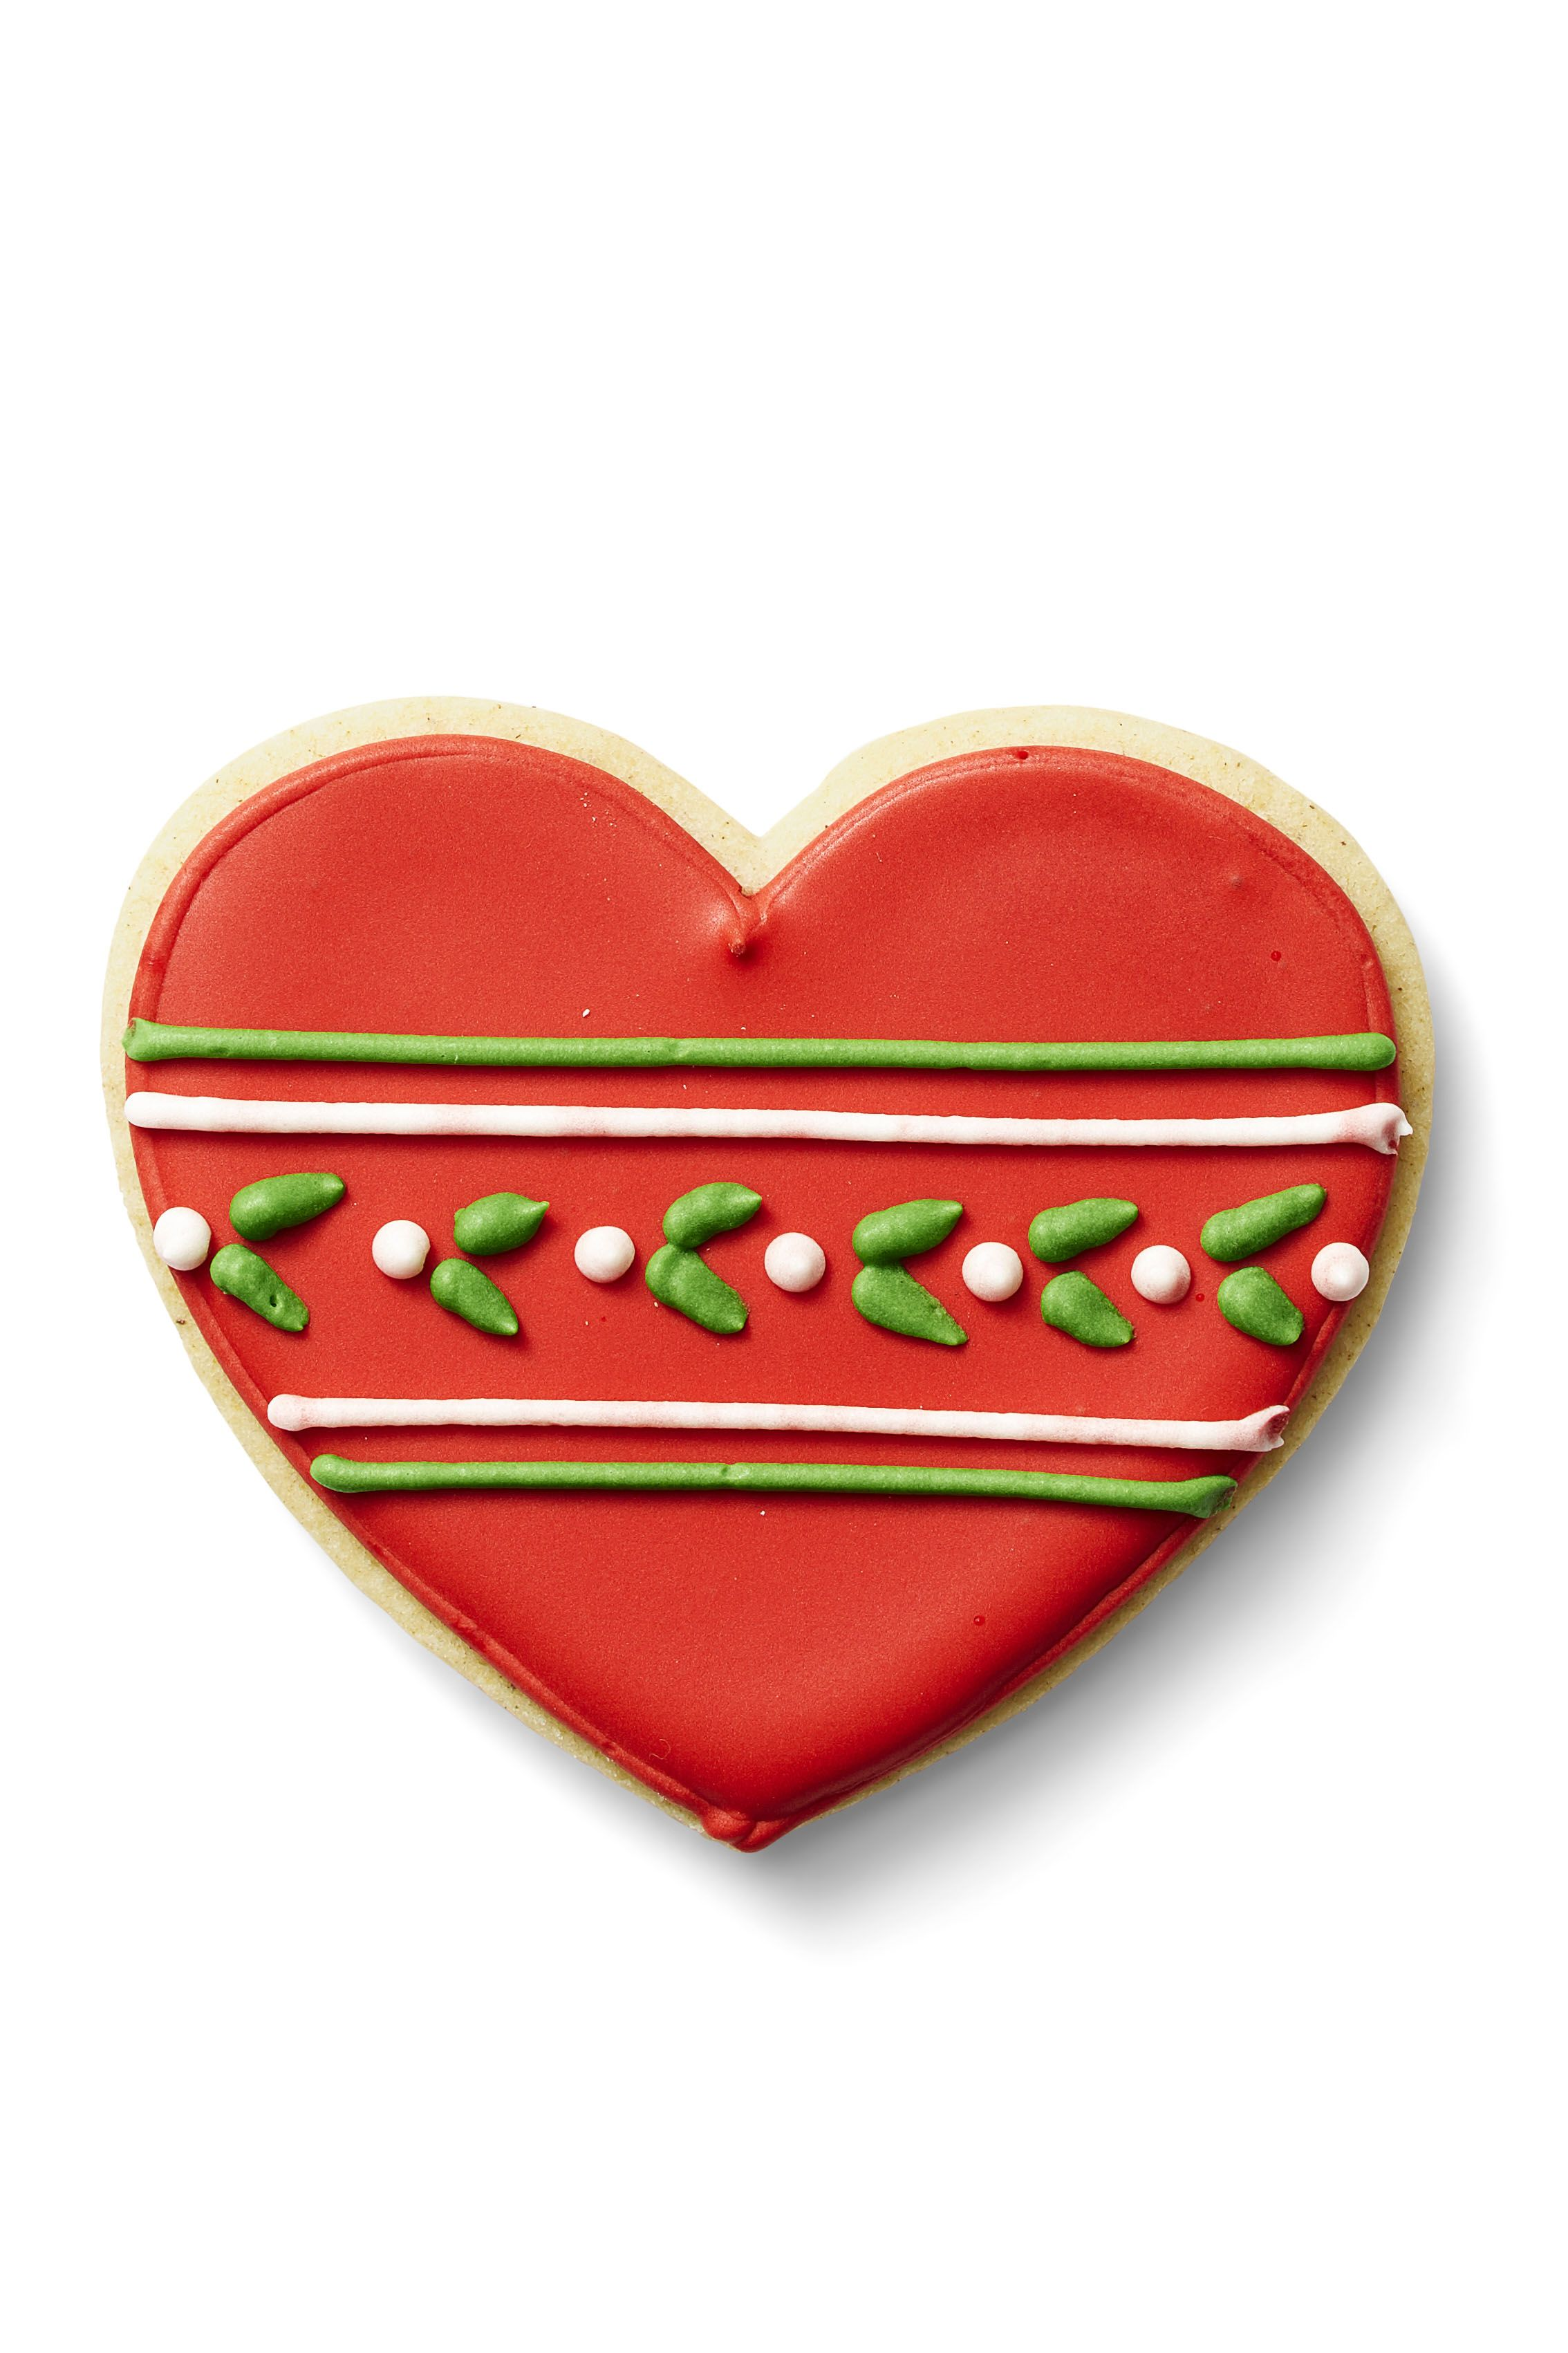 Ideas For Decorating Cookies Image Sc 1 St Good Housekeeping